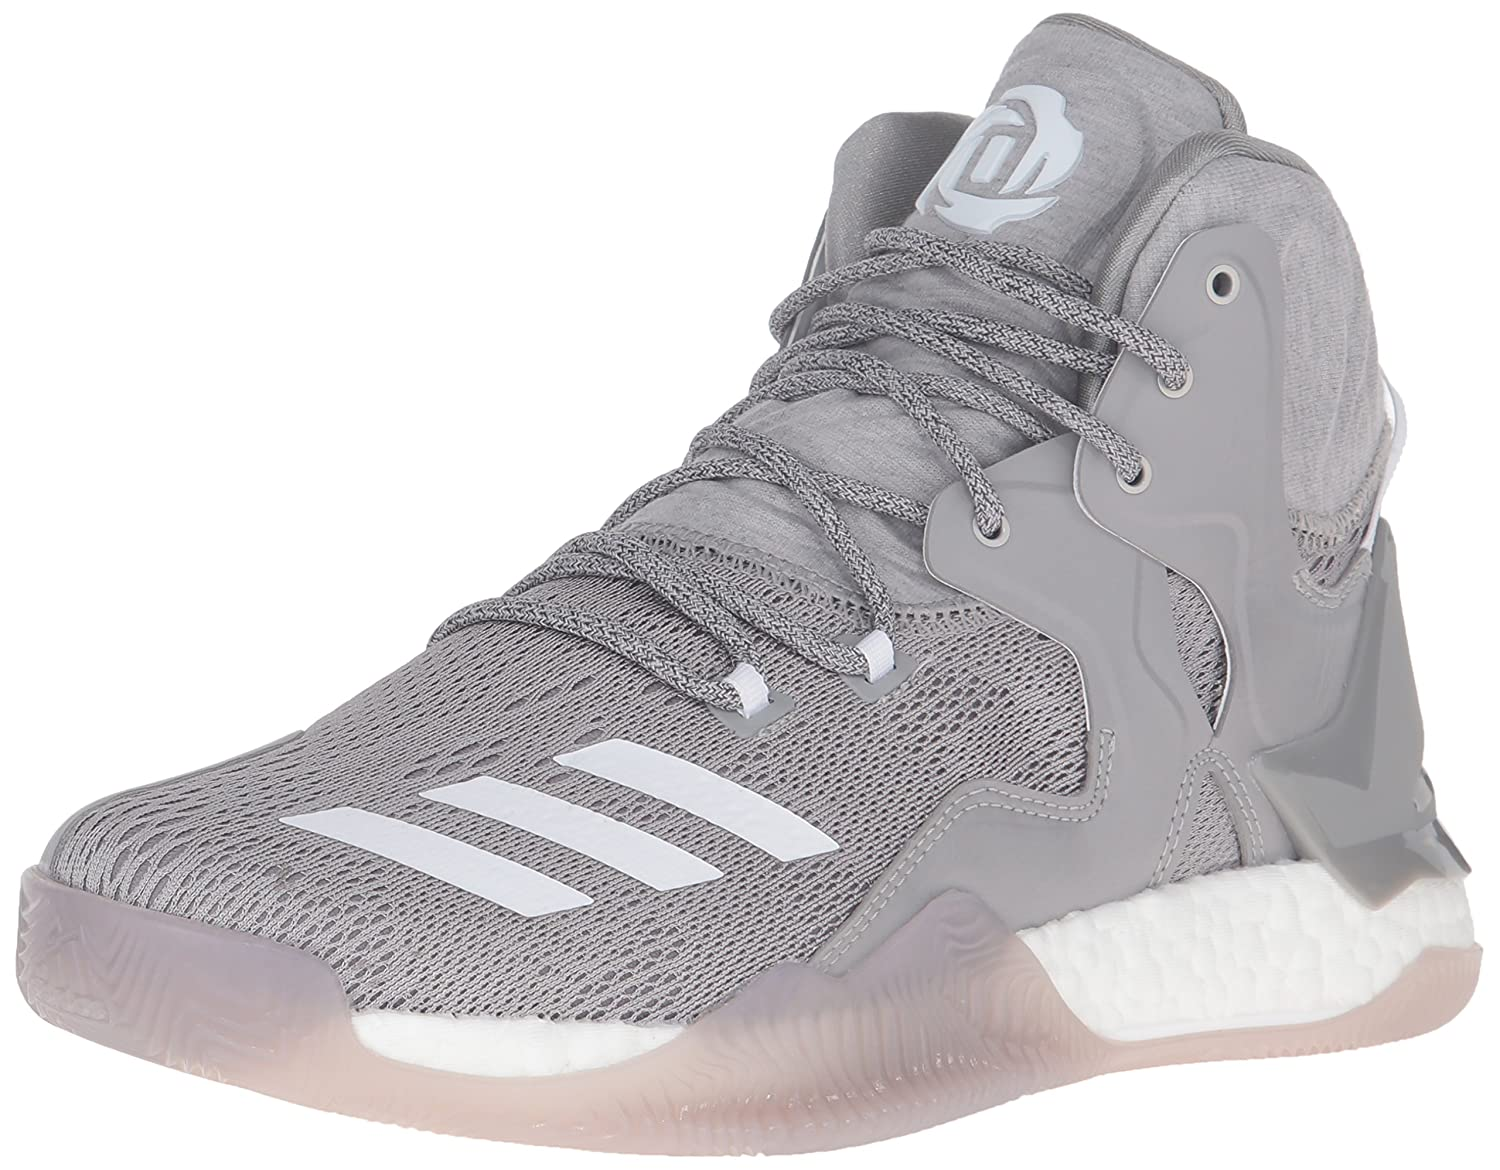 New Adidas D Rose 7 Boost Mens Basketball Shoes White Red